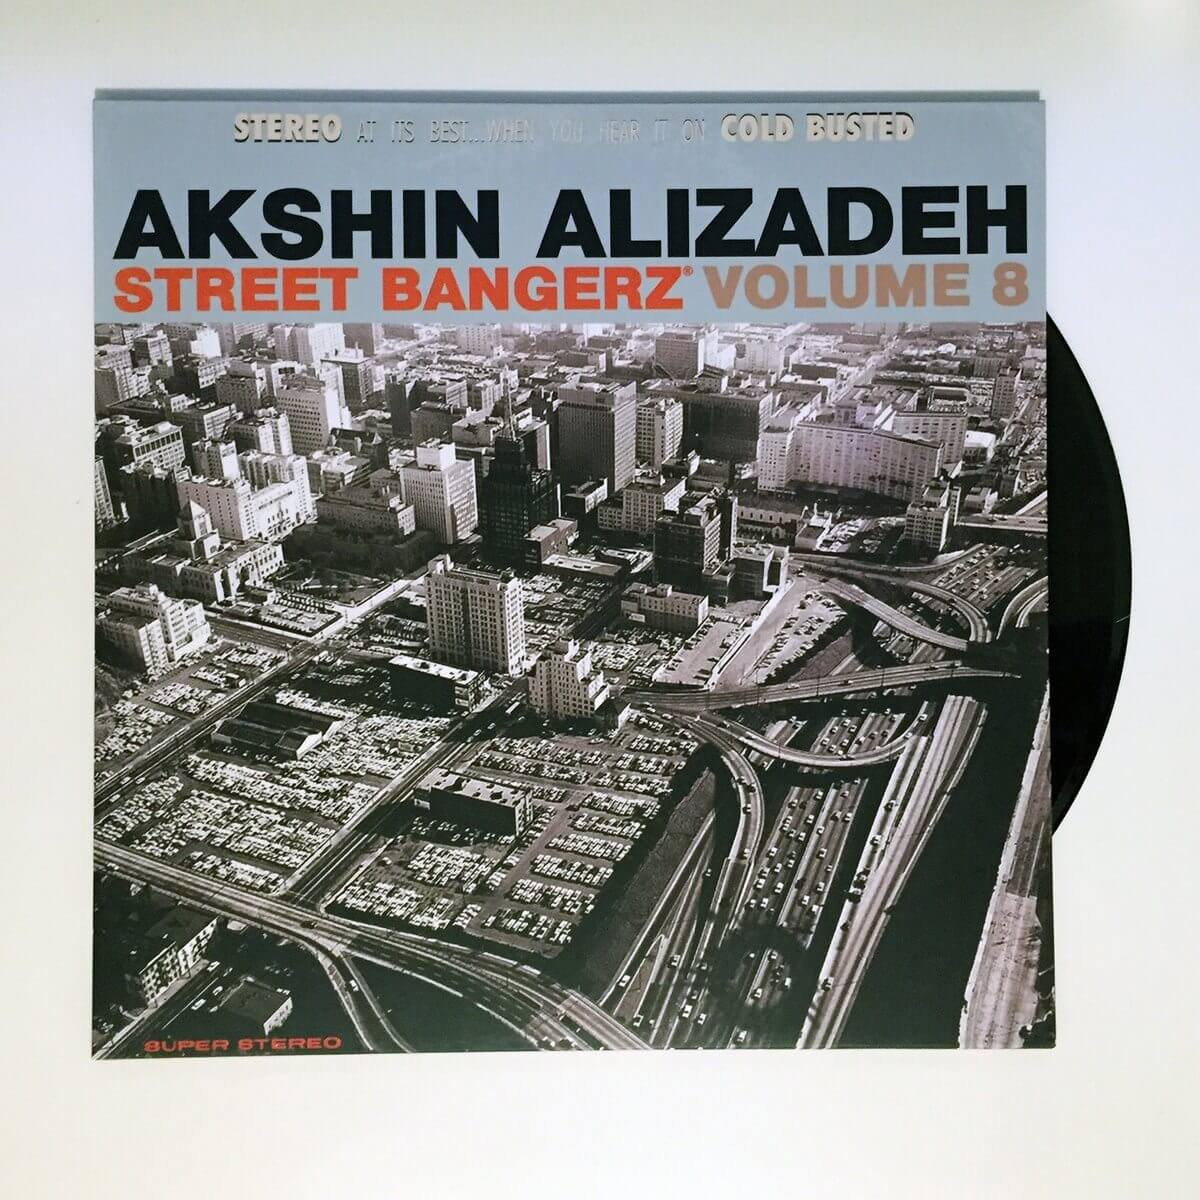 "Akshin Alizadeh - Street Bangerz Volume 8 (Remastered) - Crowdfunded Limited Edition 12"" Vinyl Cold Busted"